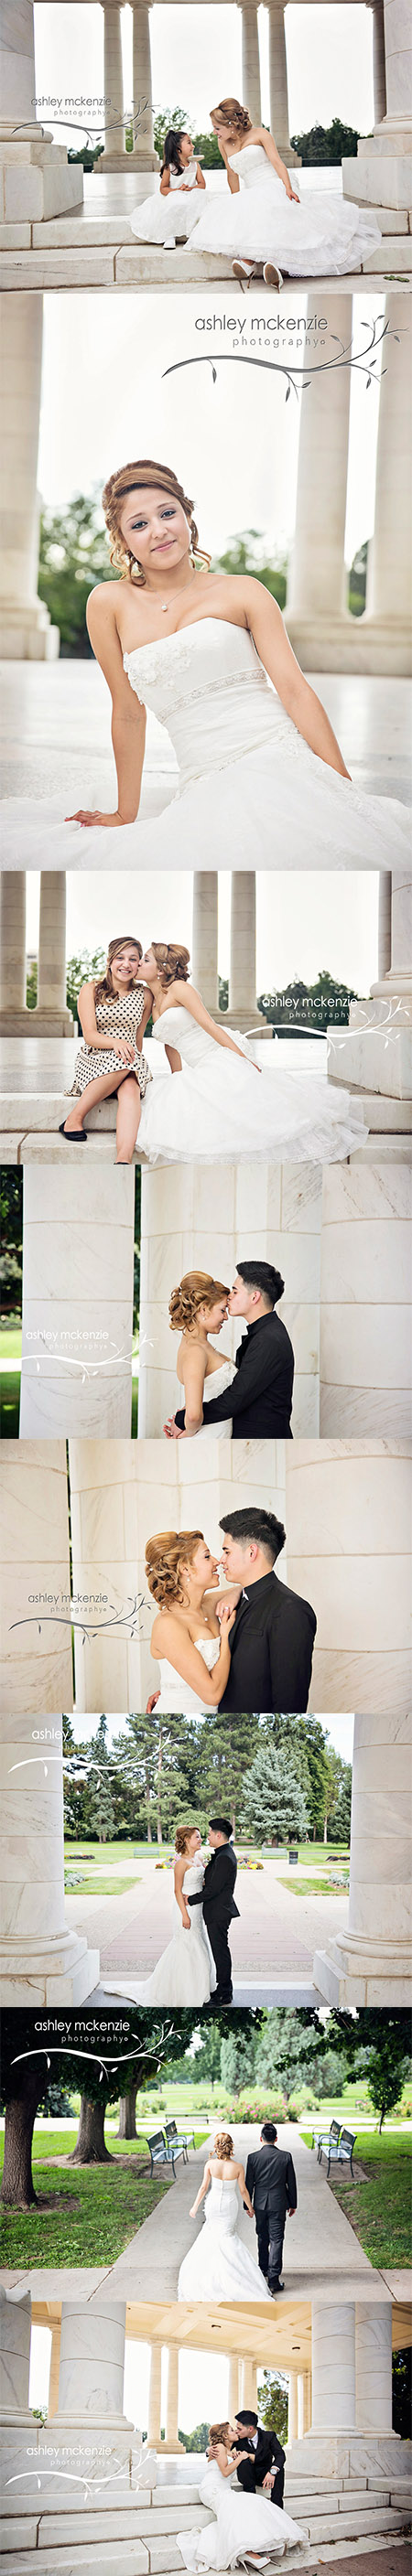 Wedding Photography By Ashley McKenzie Photography in Denver, Colorado